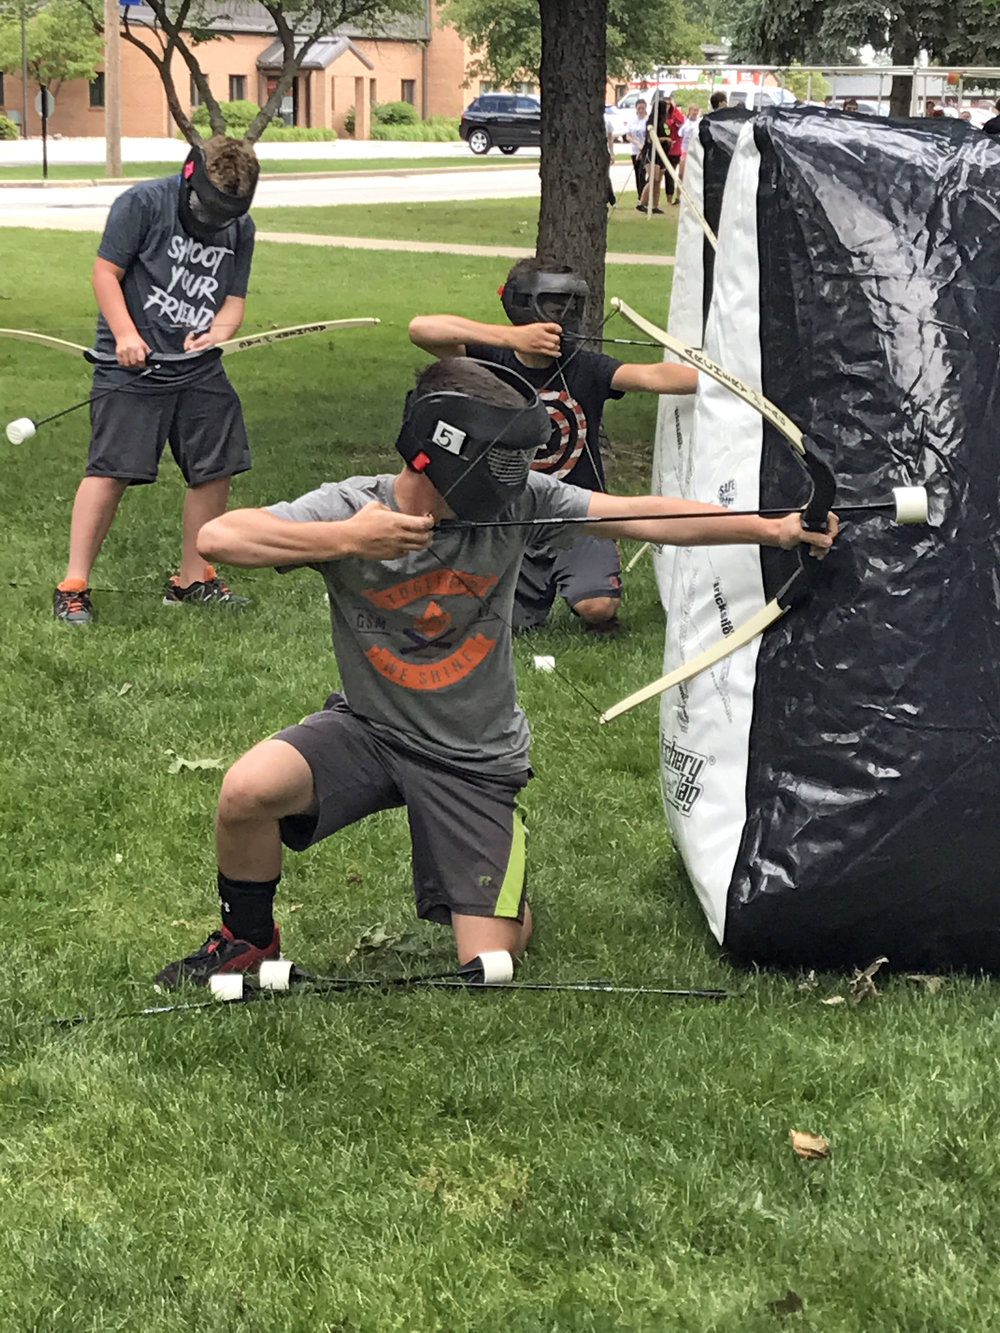 Archery_Tag_Outdoor_Inflatable_100.jpg